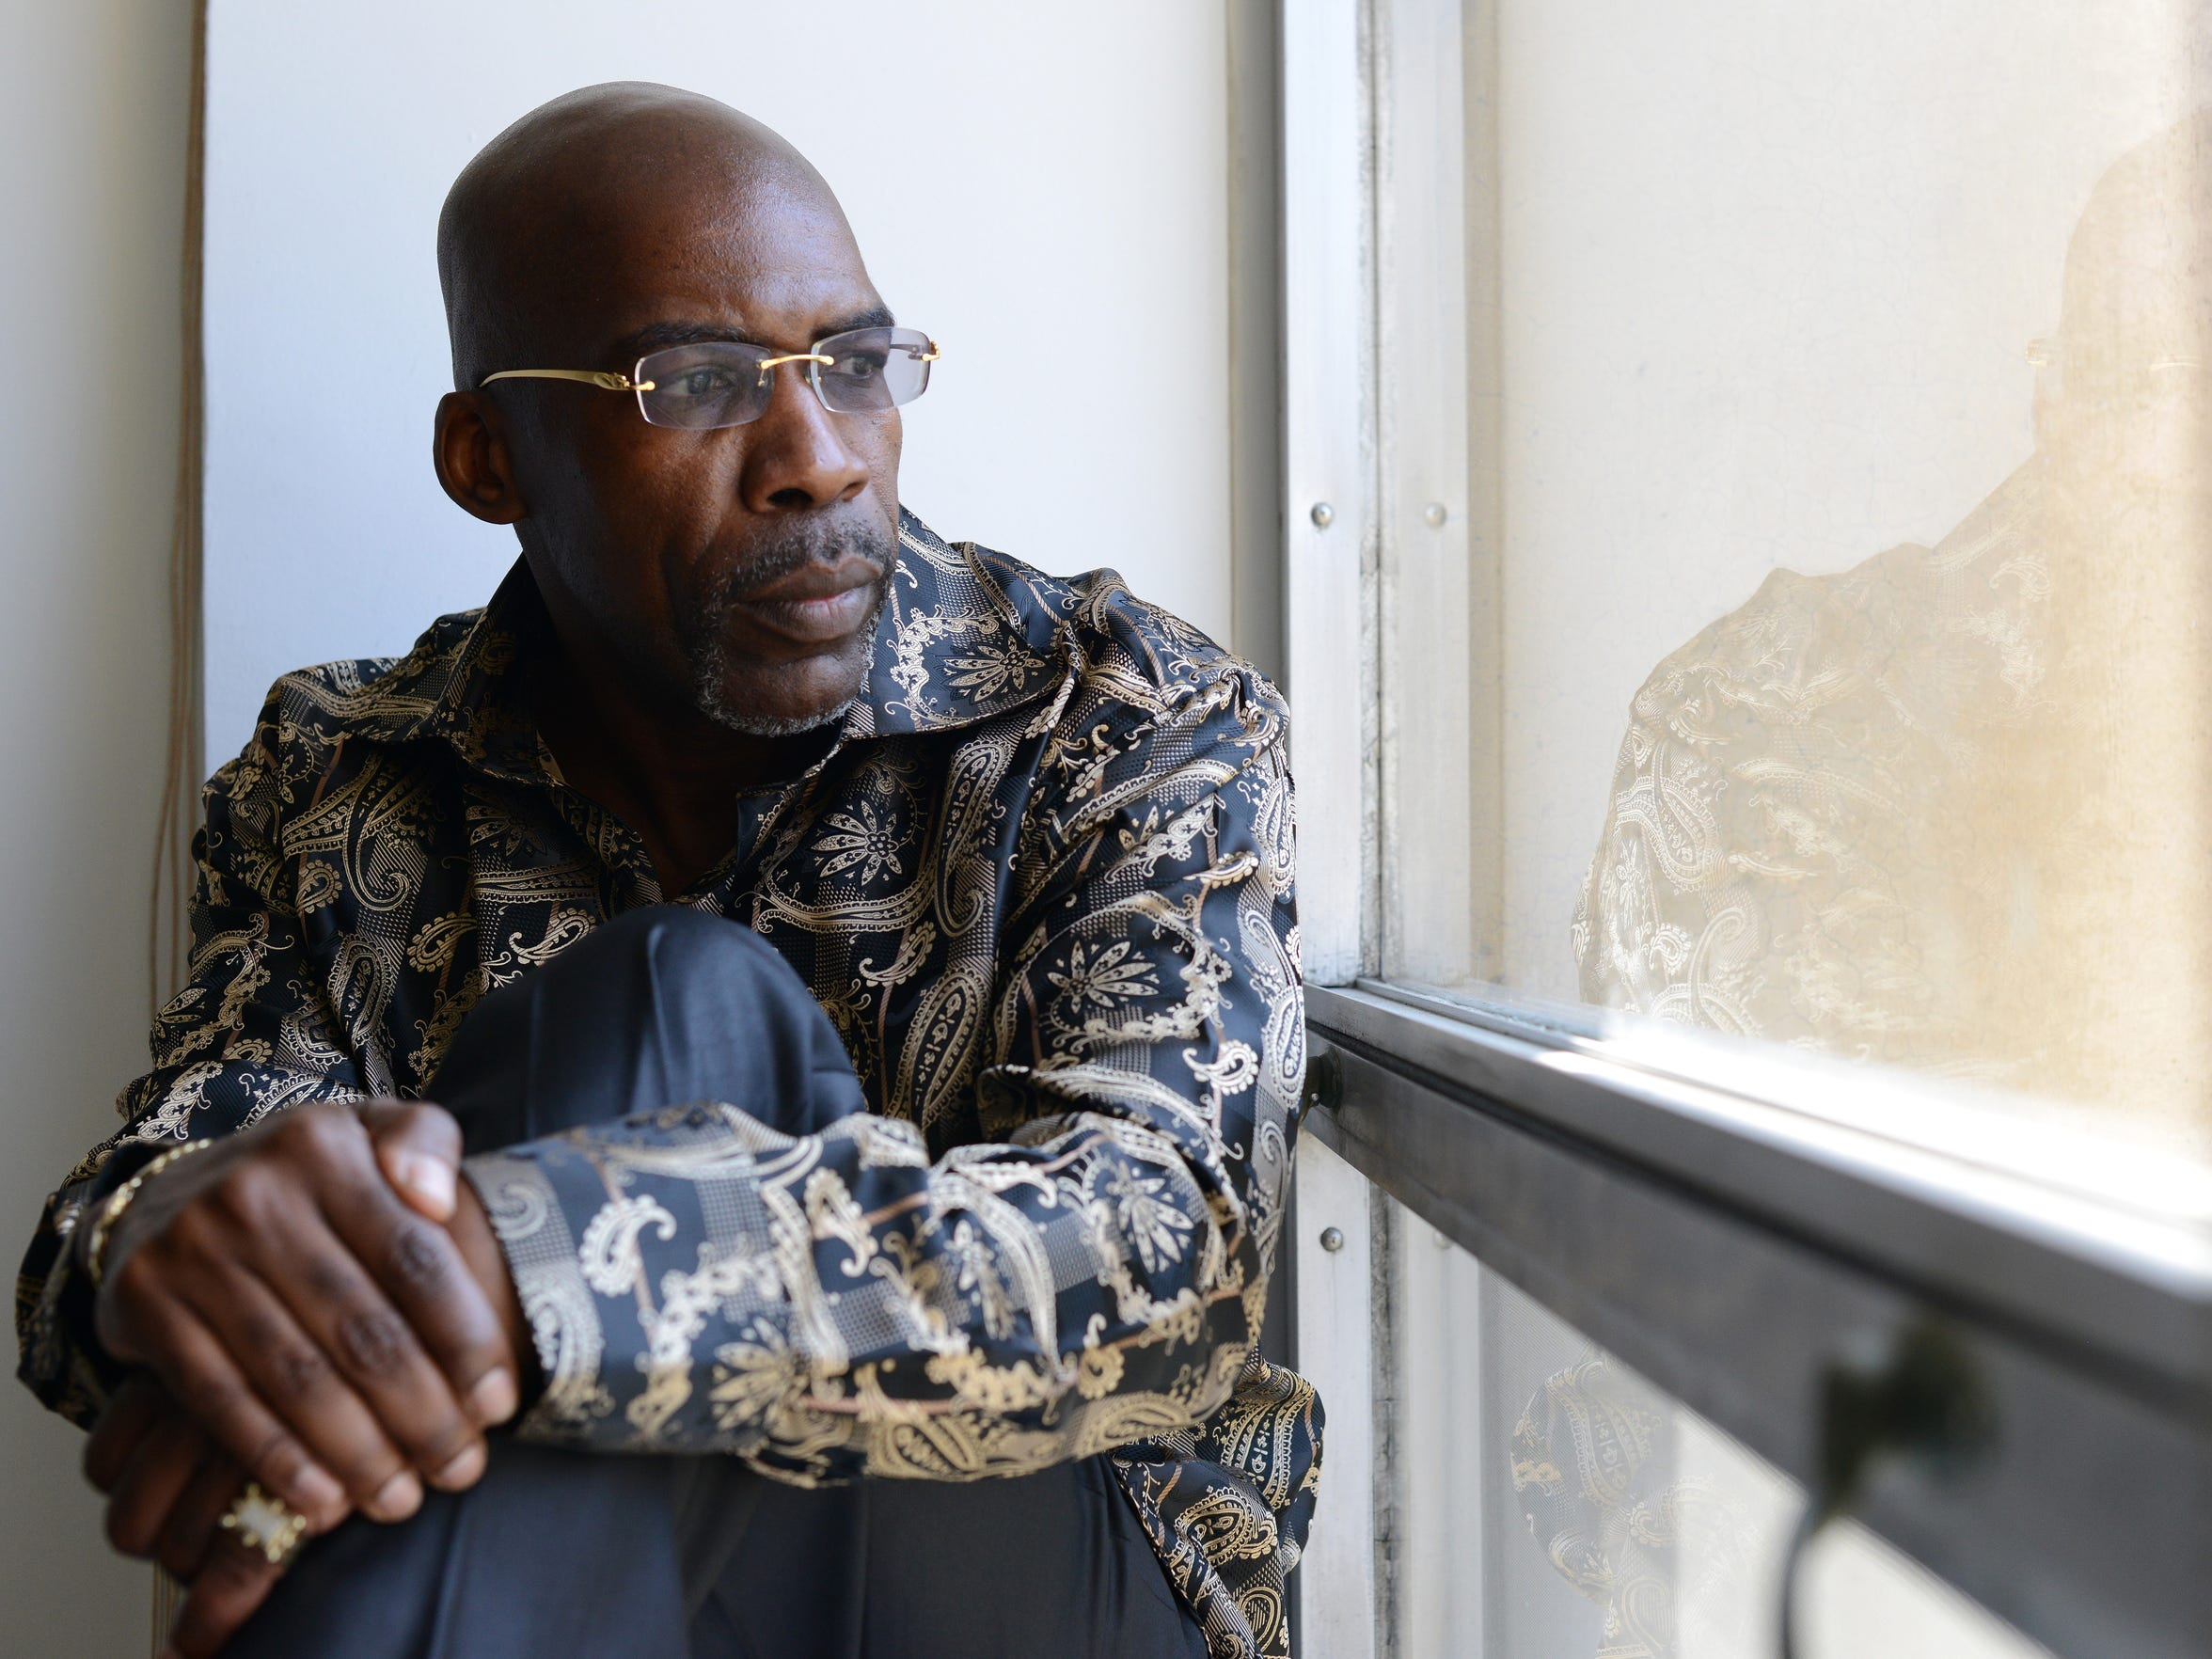 Jonathan Fleming, 52, spent 24 years in prison for a murder he didn't commit. The day he was released, dozens of news cameras recorded his first moments as a free man. But more than a year after his release, he has not received any compensation.